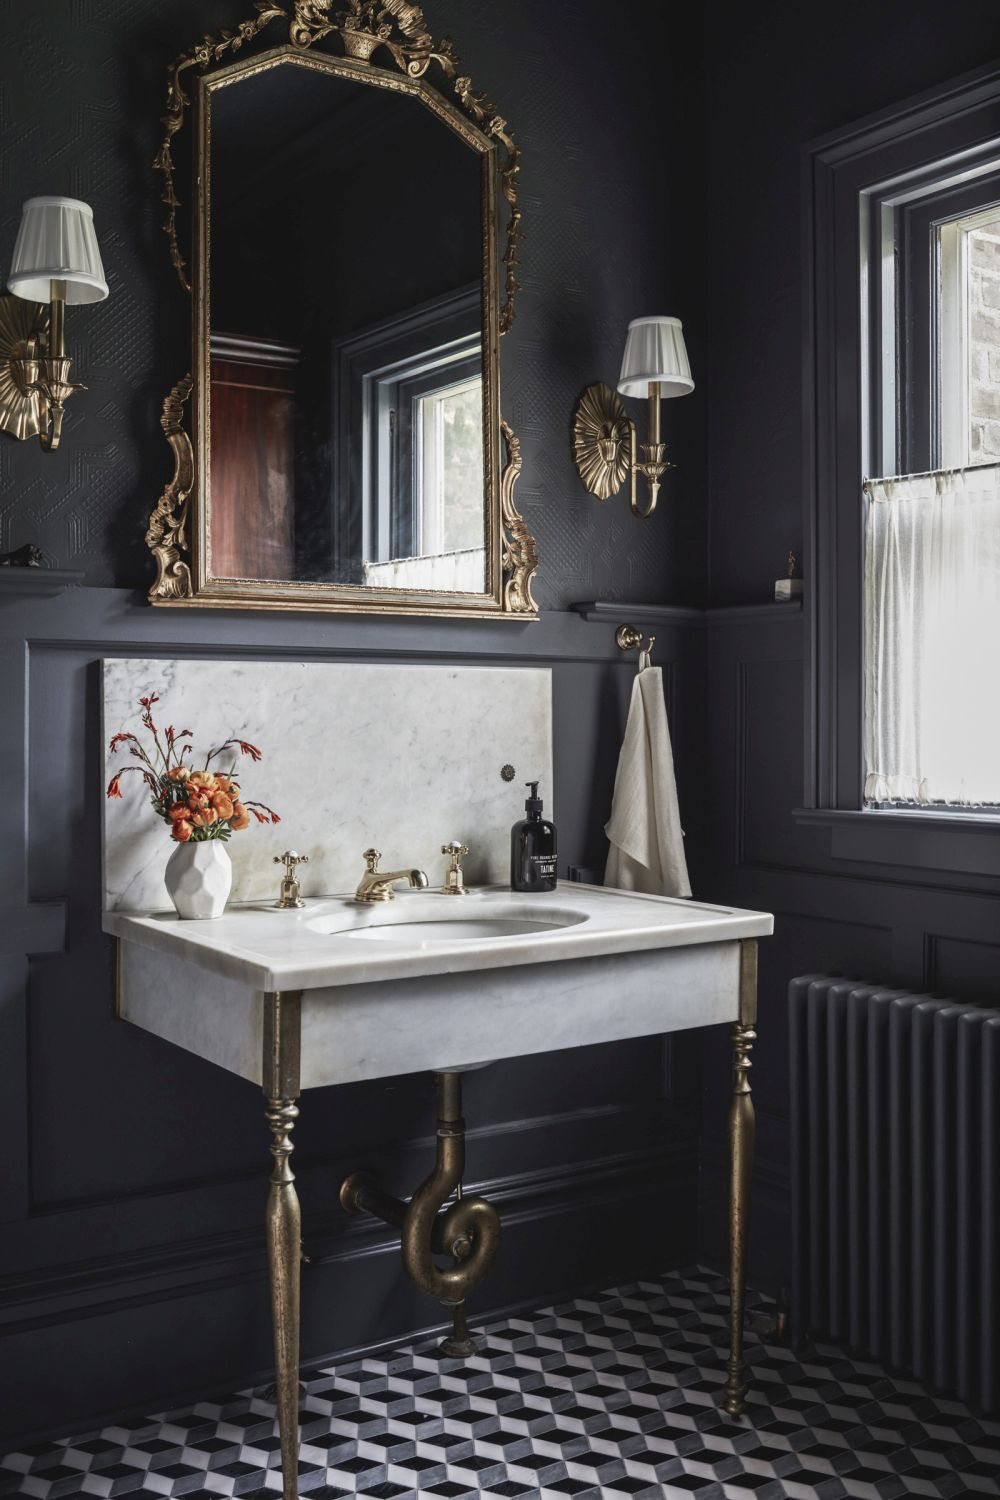 1558953967 991 black and white bathroom designs that show simple can also be interesting - Black and White Bathroom Designs That Show Simple Can Also Be Interesting